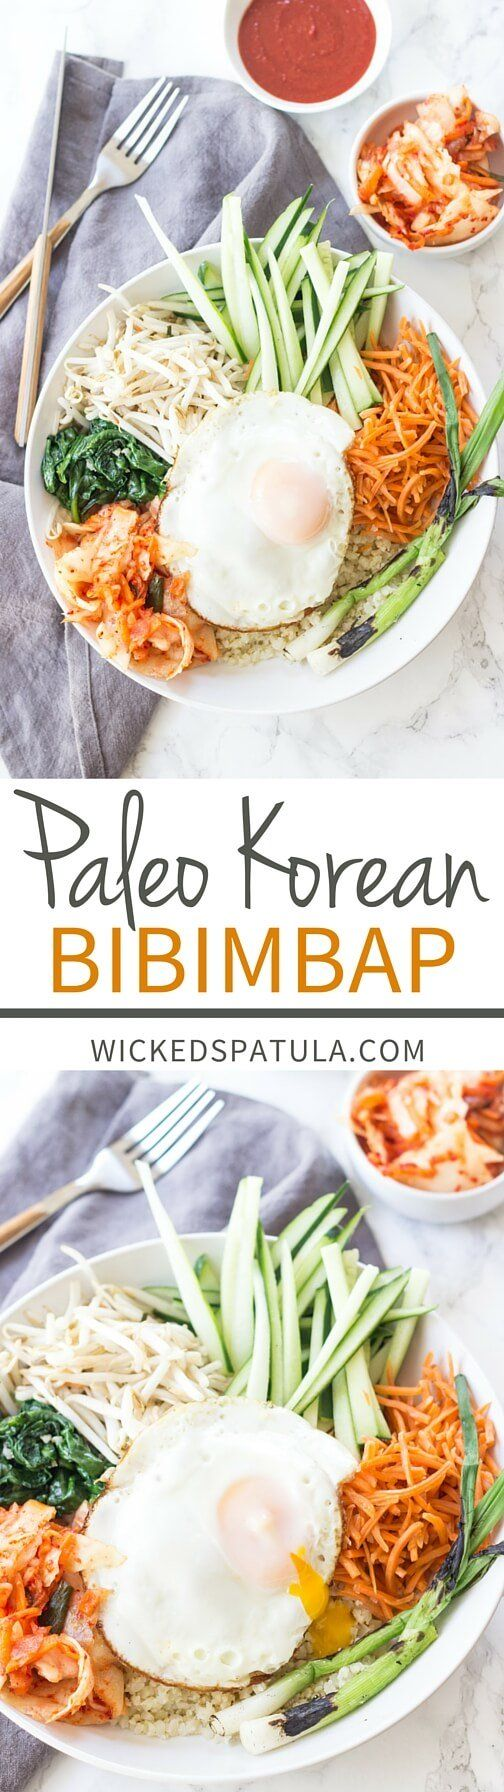 34 best Paleo Japanese images on Pinterest | Eat healthy, Healthy ...